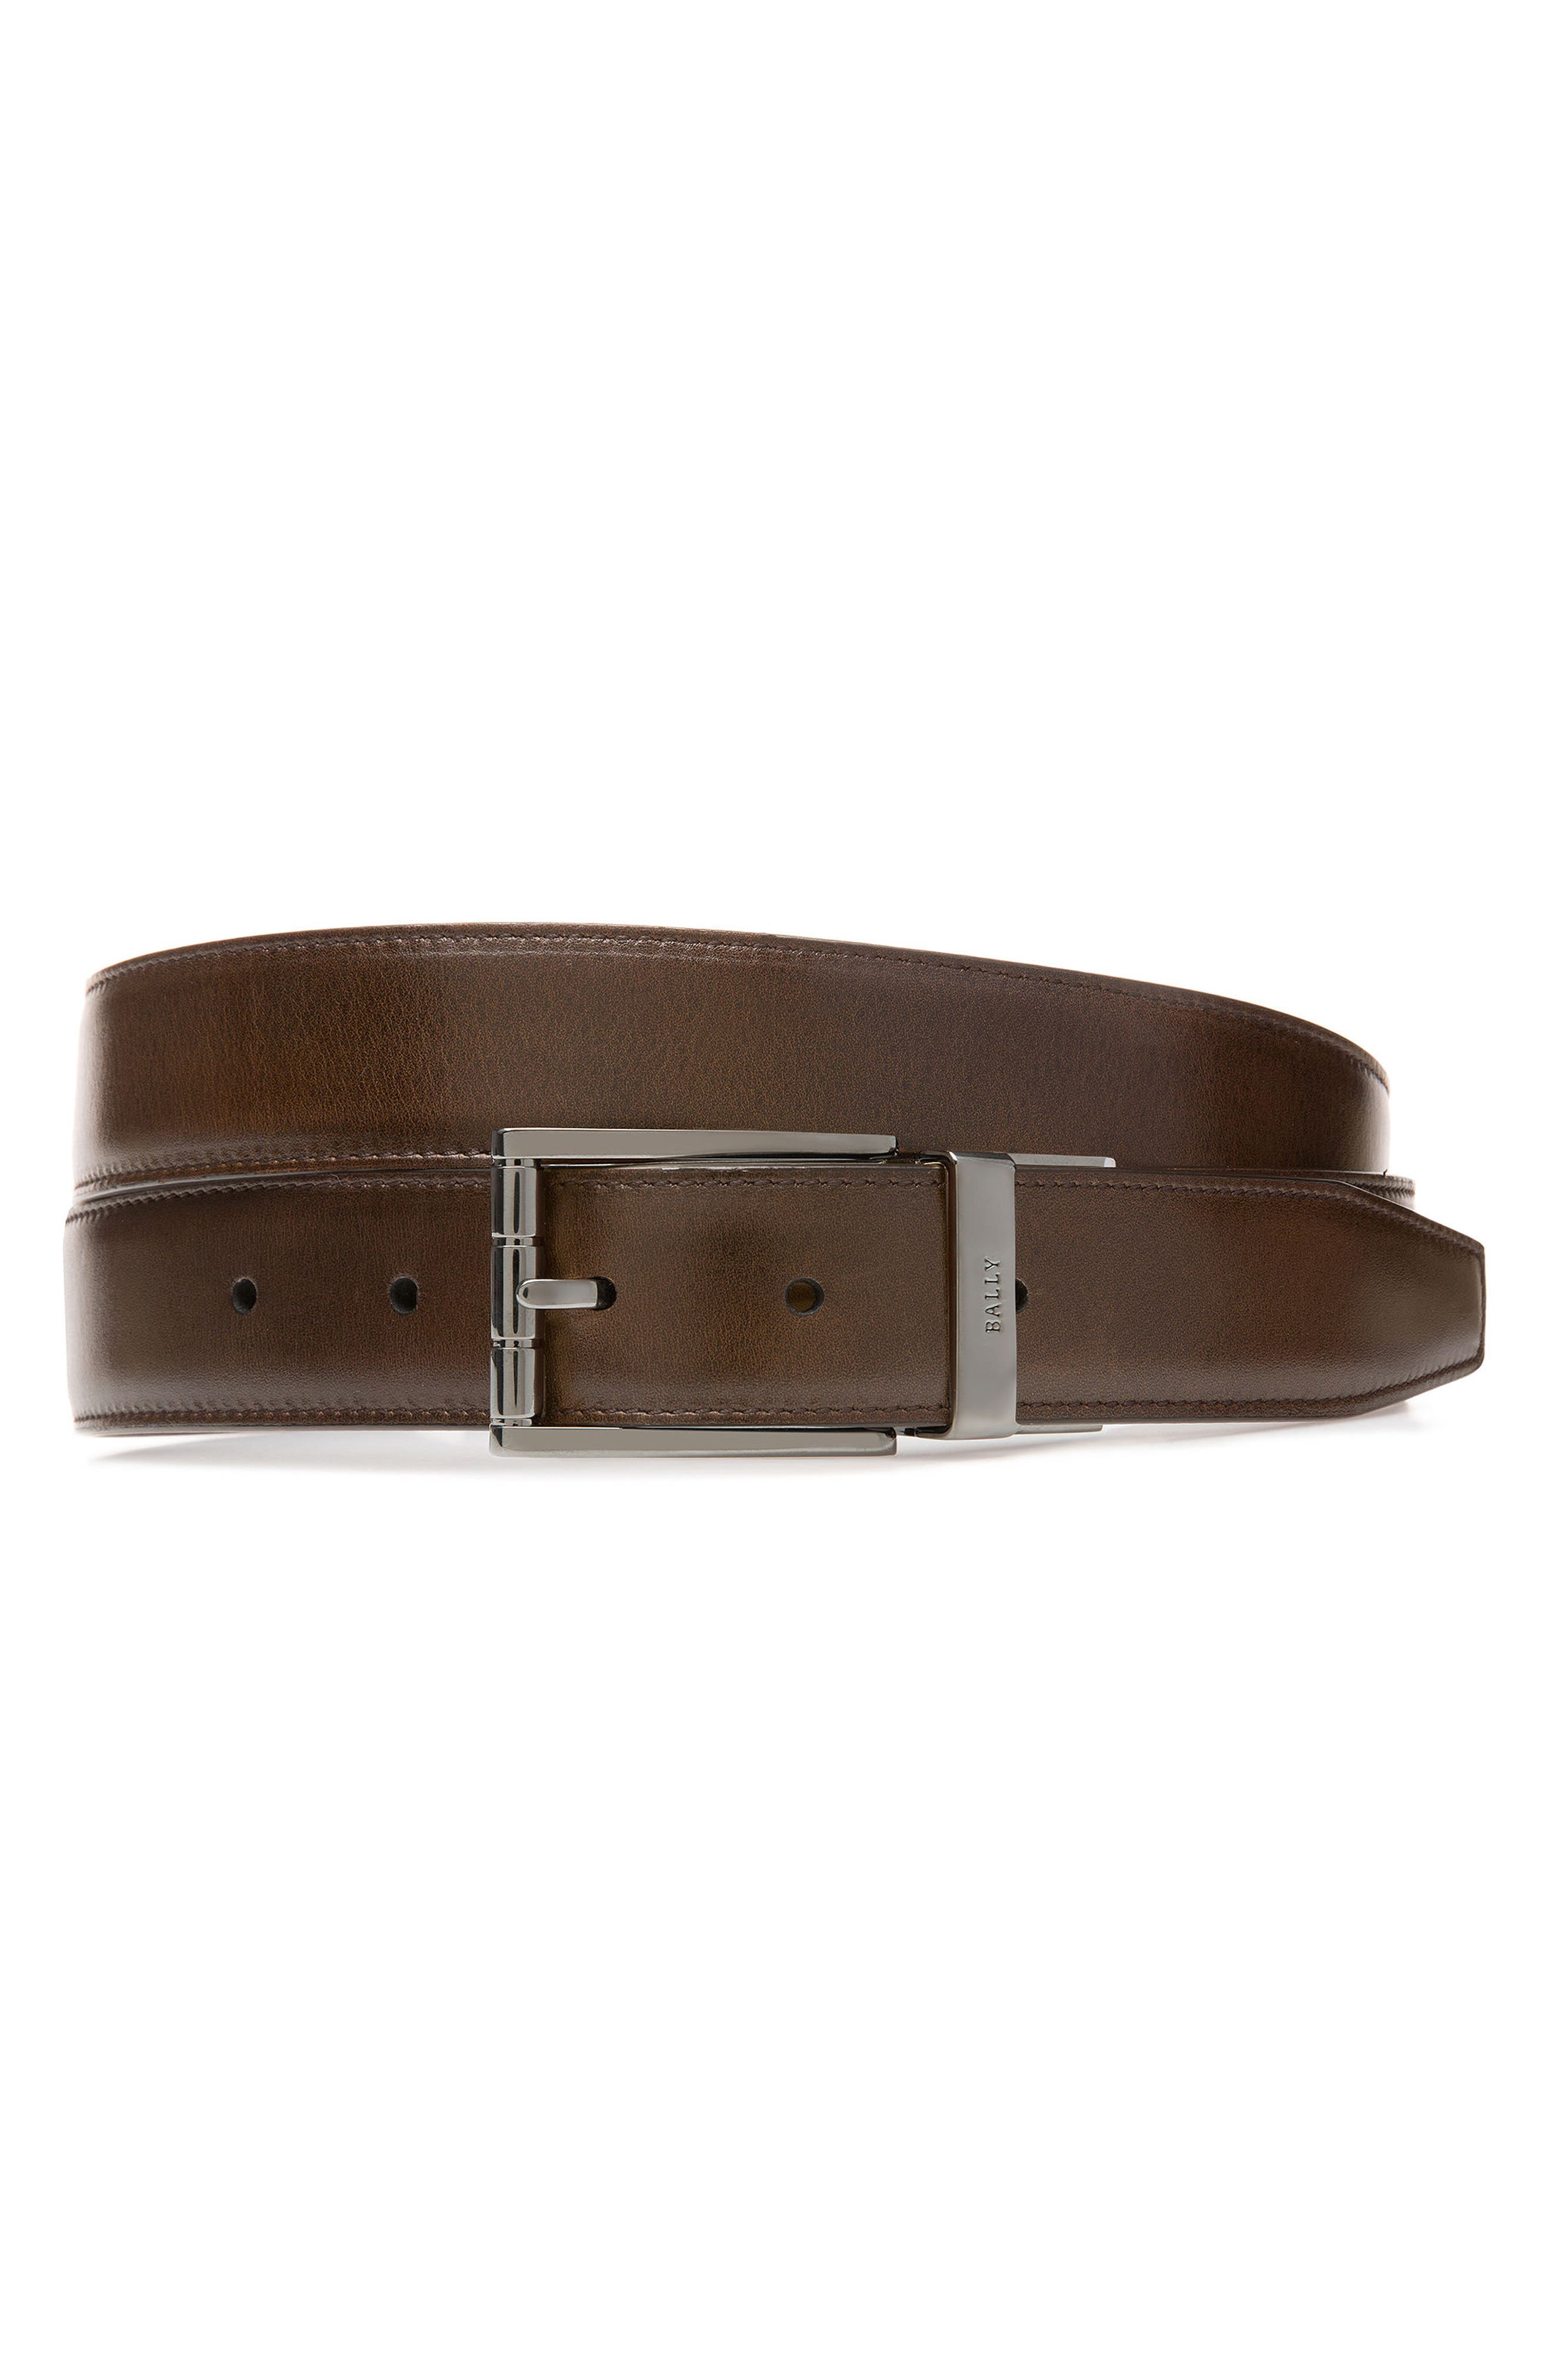 BALLY,                             Astor Reversible Leather Belt,                             Main thumbnail 1, color,                             MID BROWN